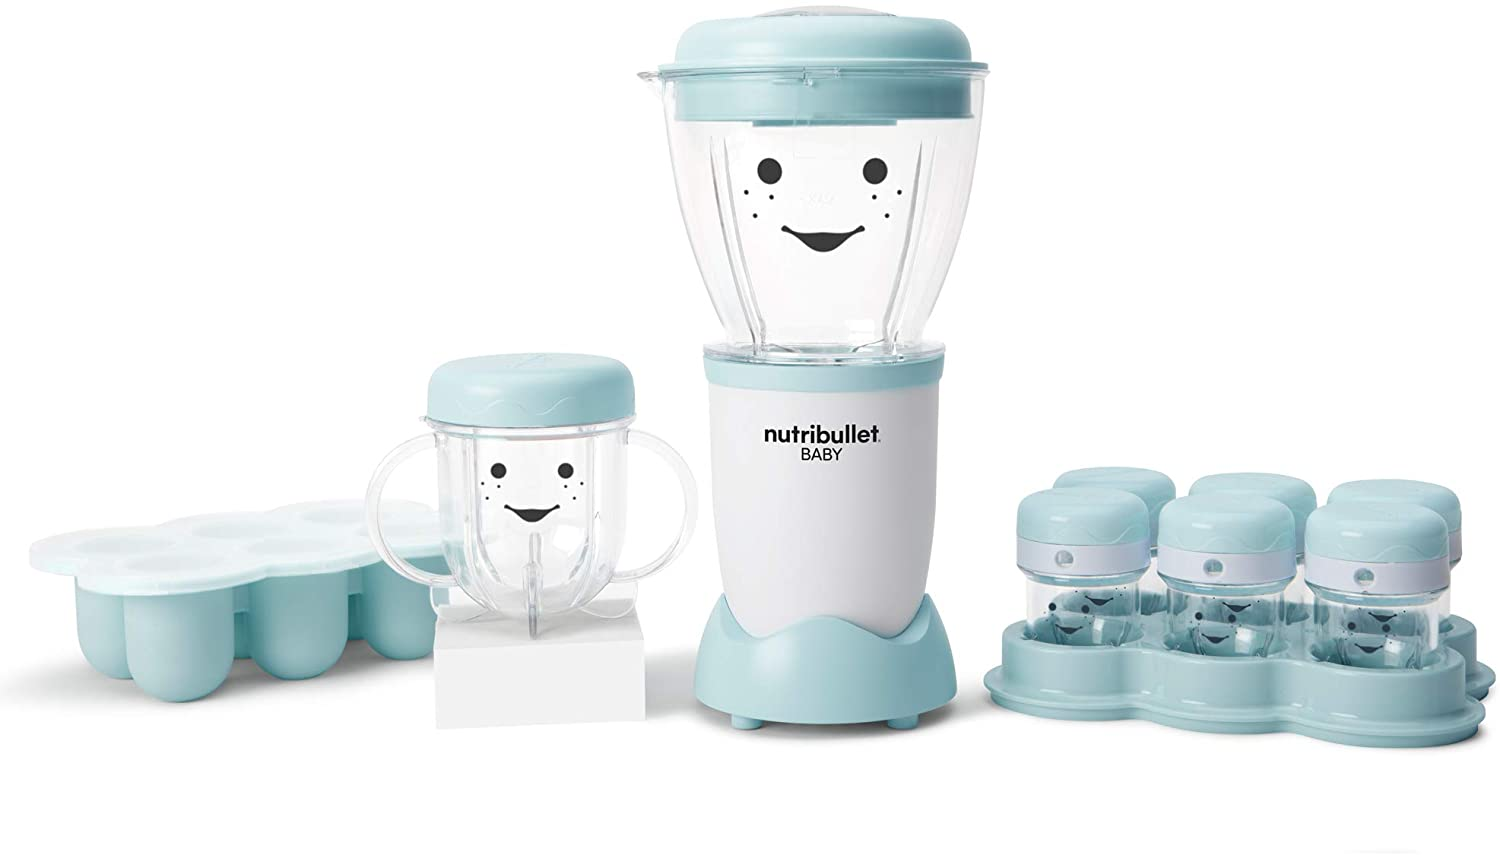 Magic Bullet Baby Blender for Baby Food